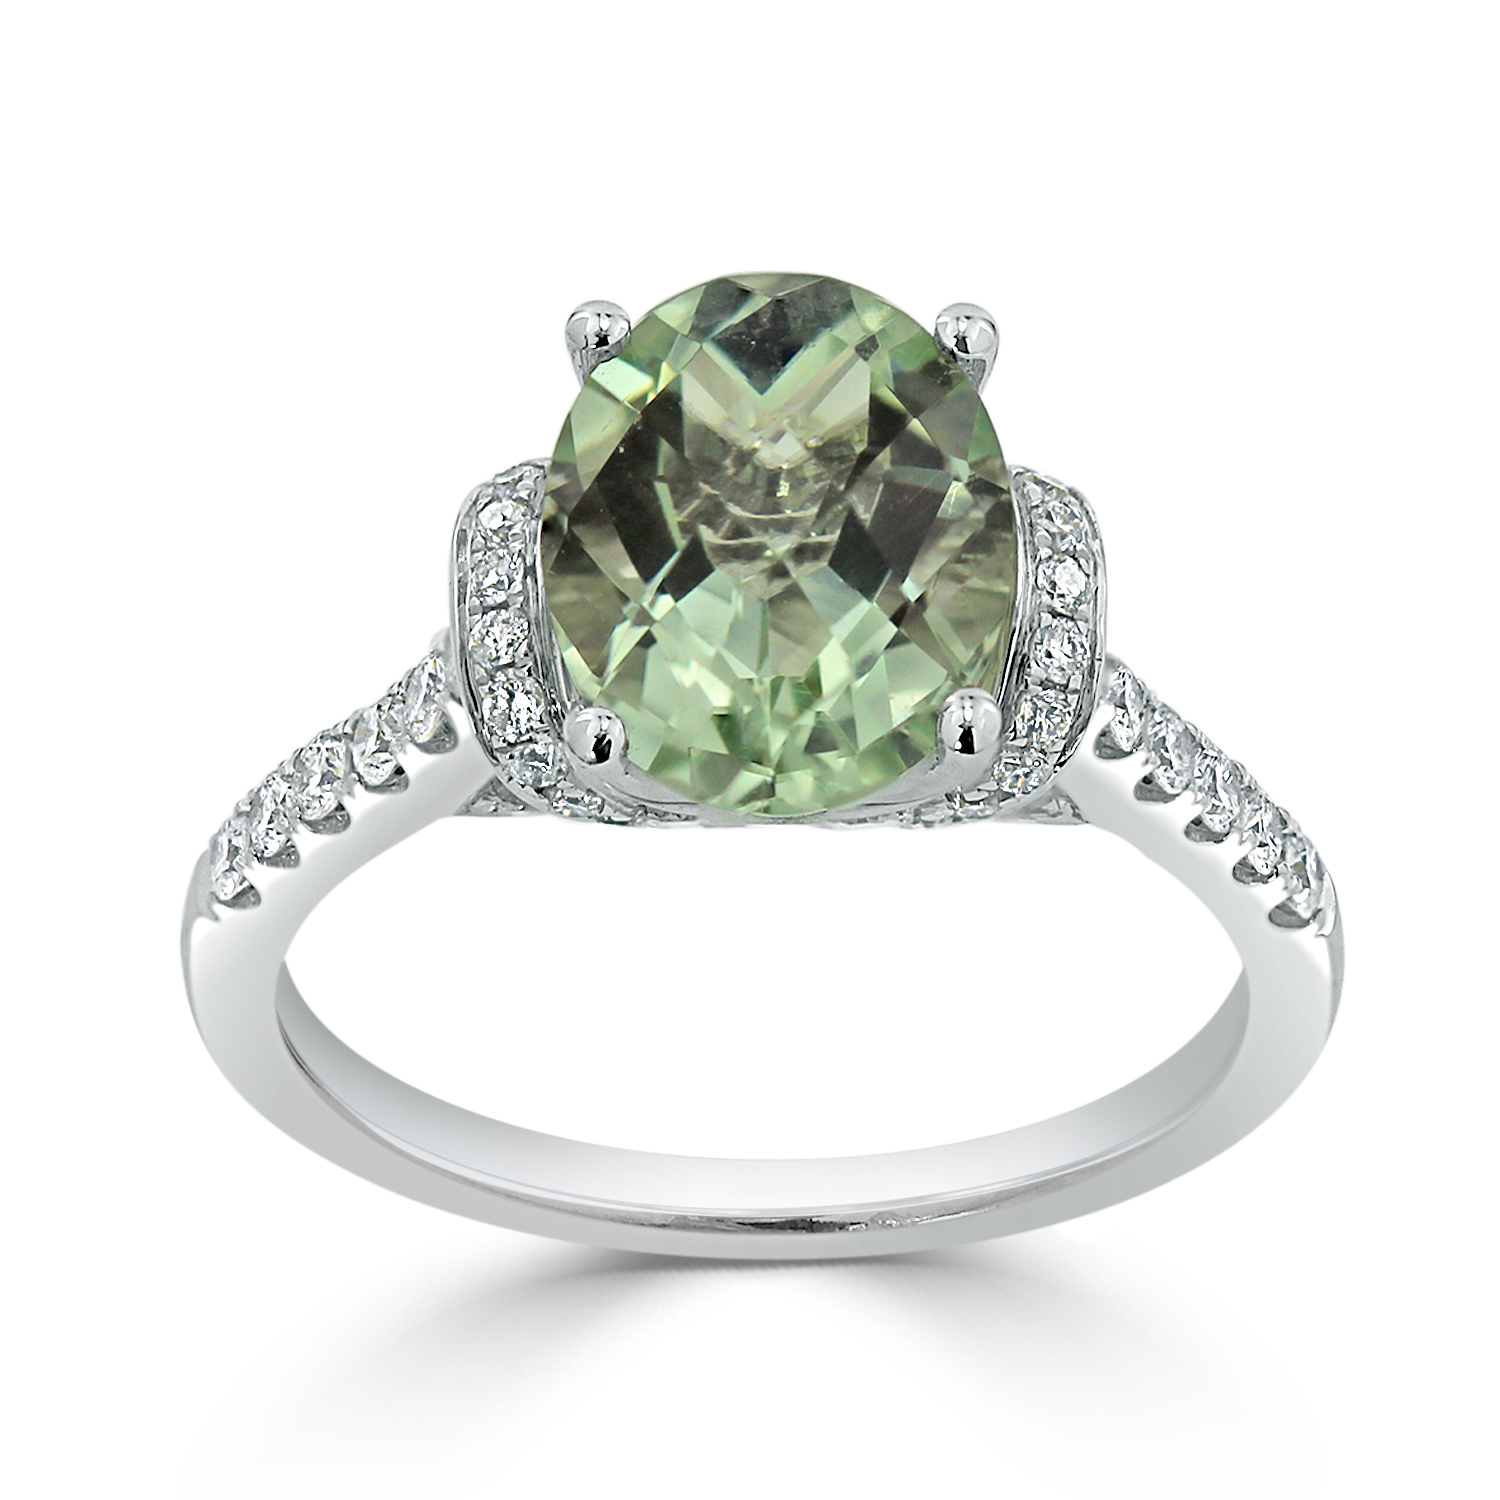 Halo Green Amethyst Diamond Ring in 14K White Gold with 1.65 carat Oval Green Amethyst